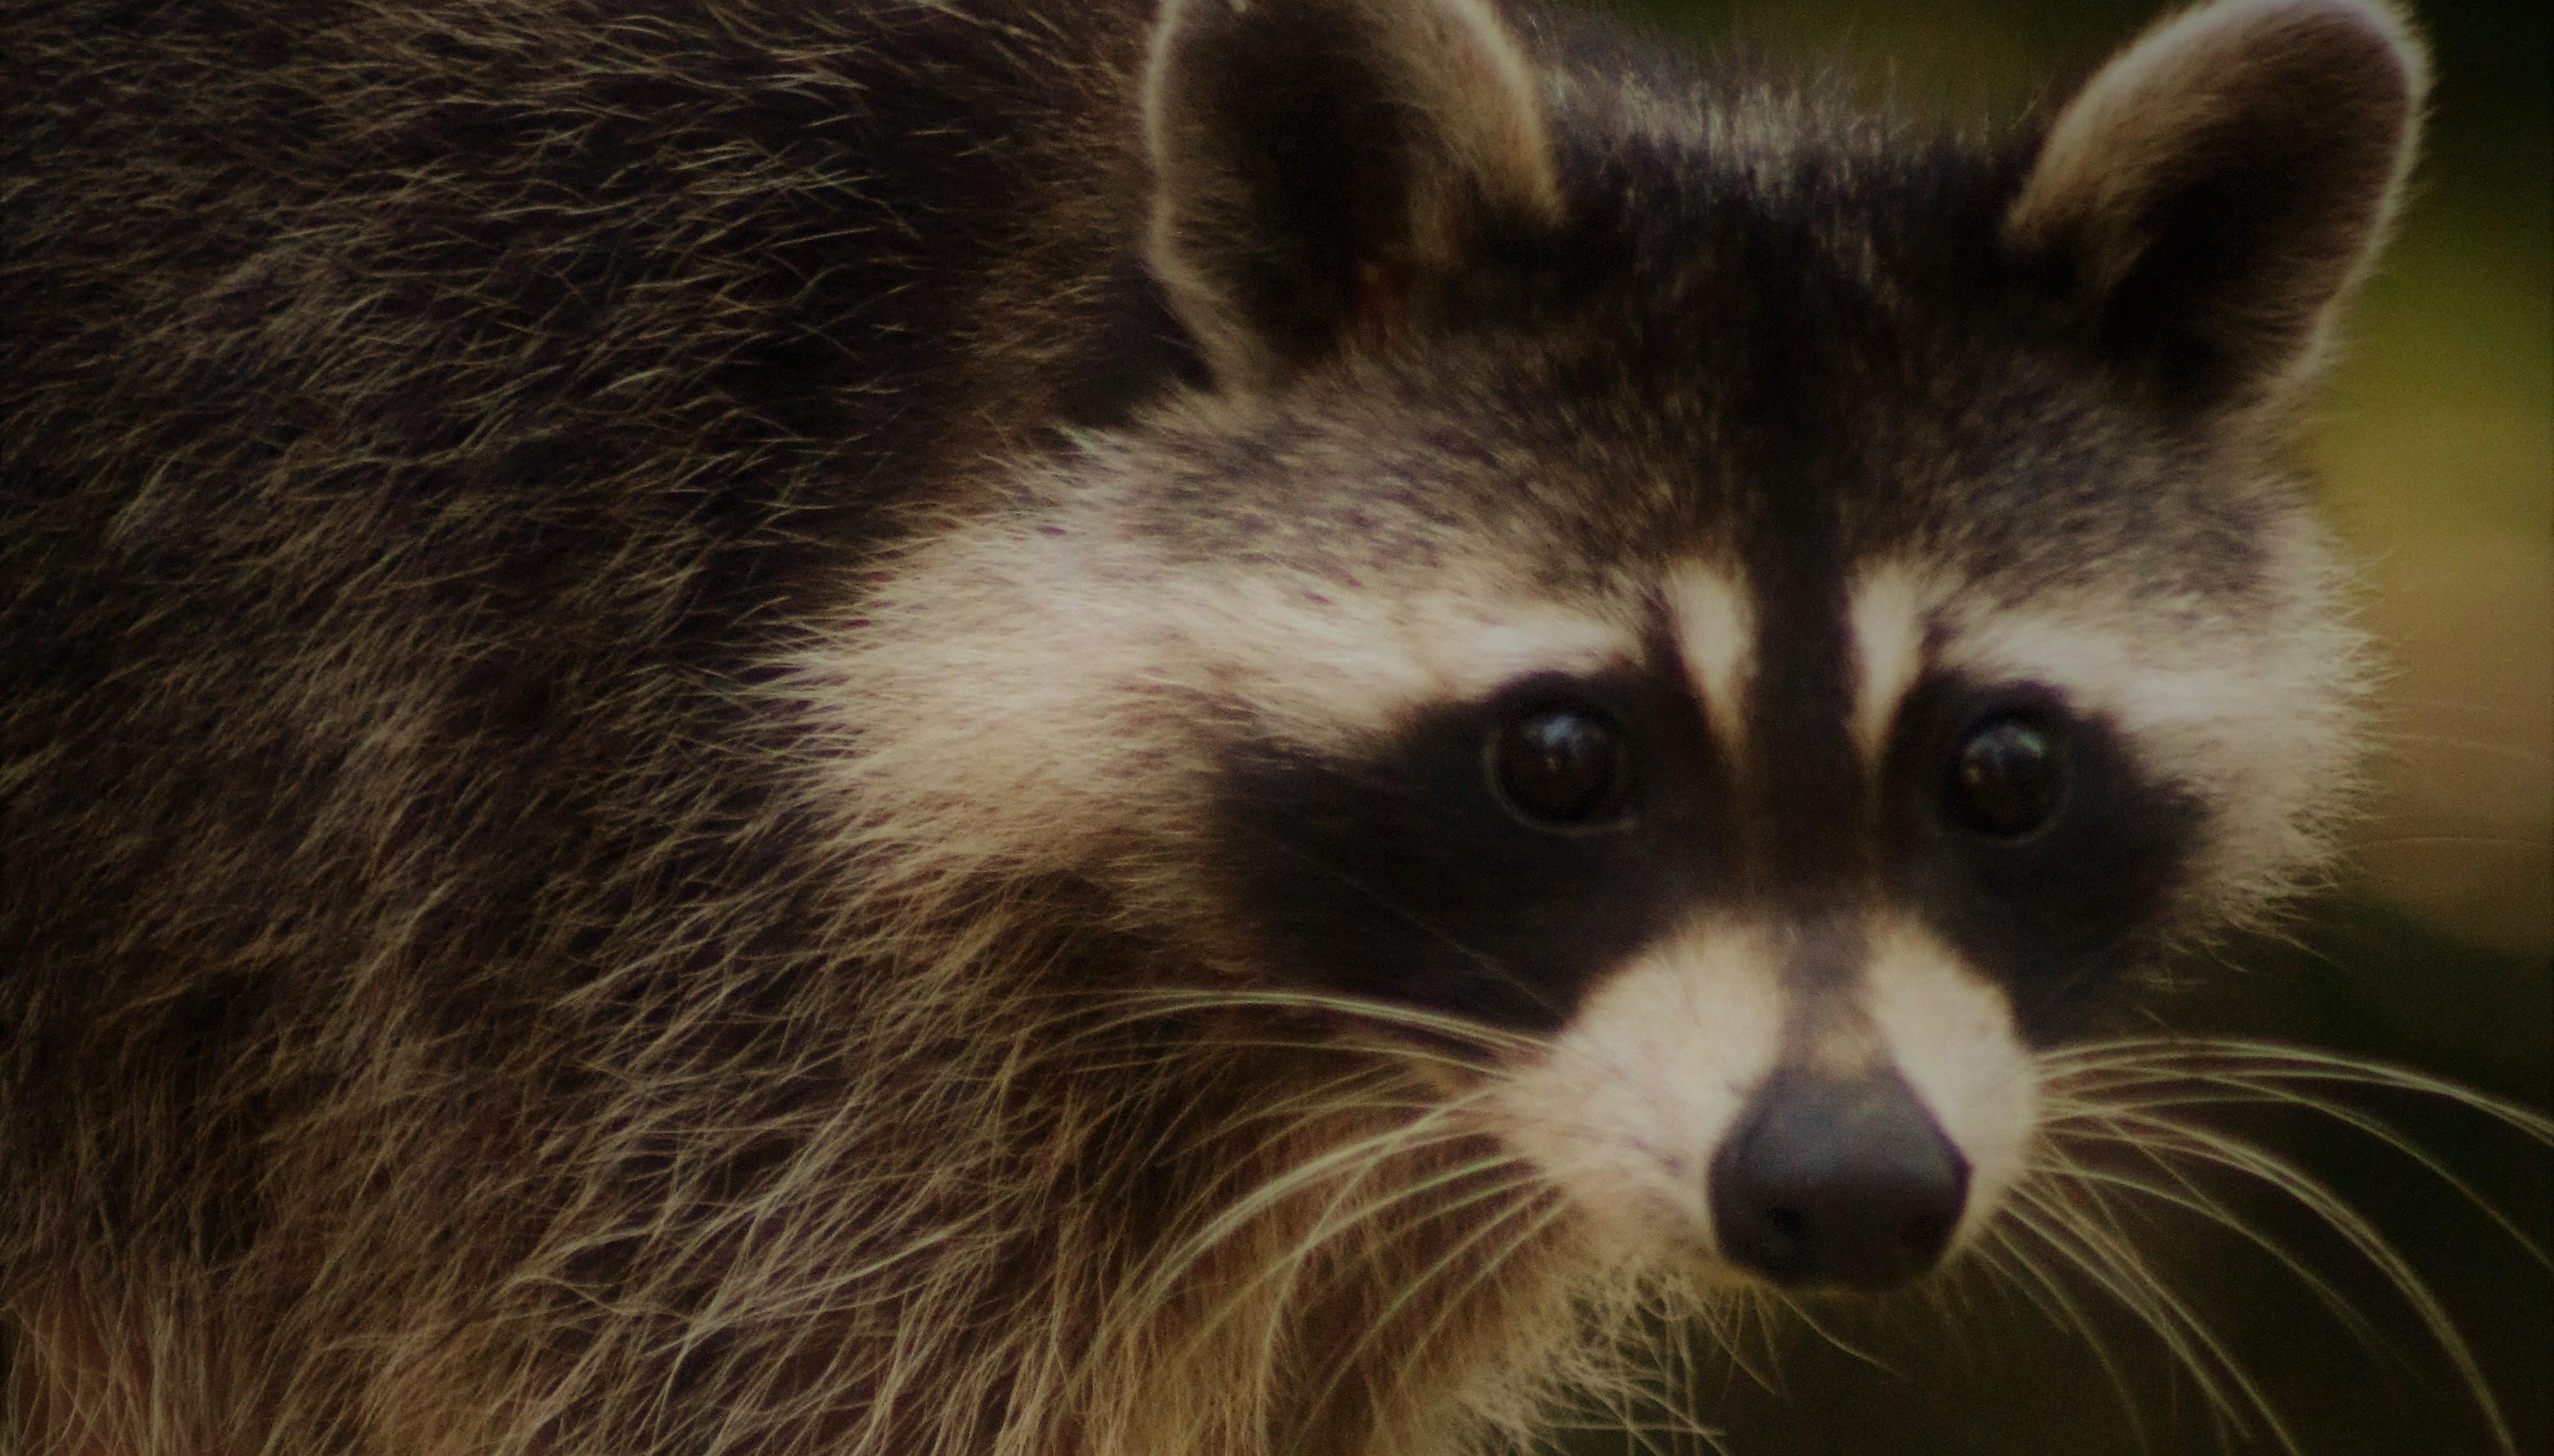 Rabies alert issued for southwest Leon County after two rabid raccoons test positive